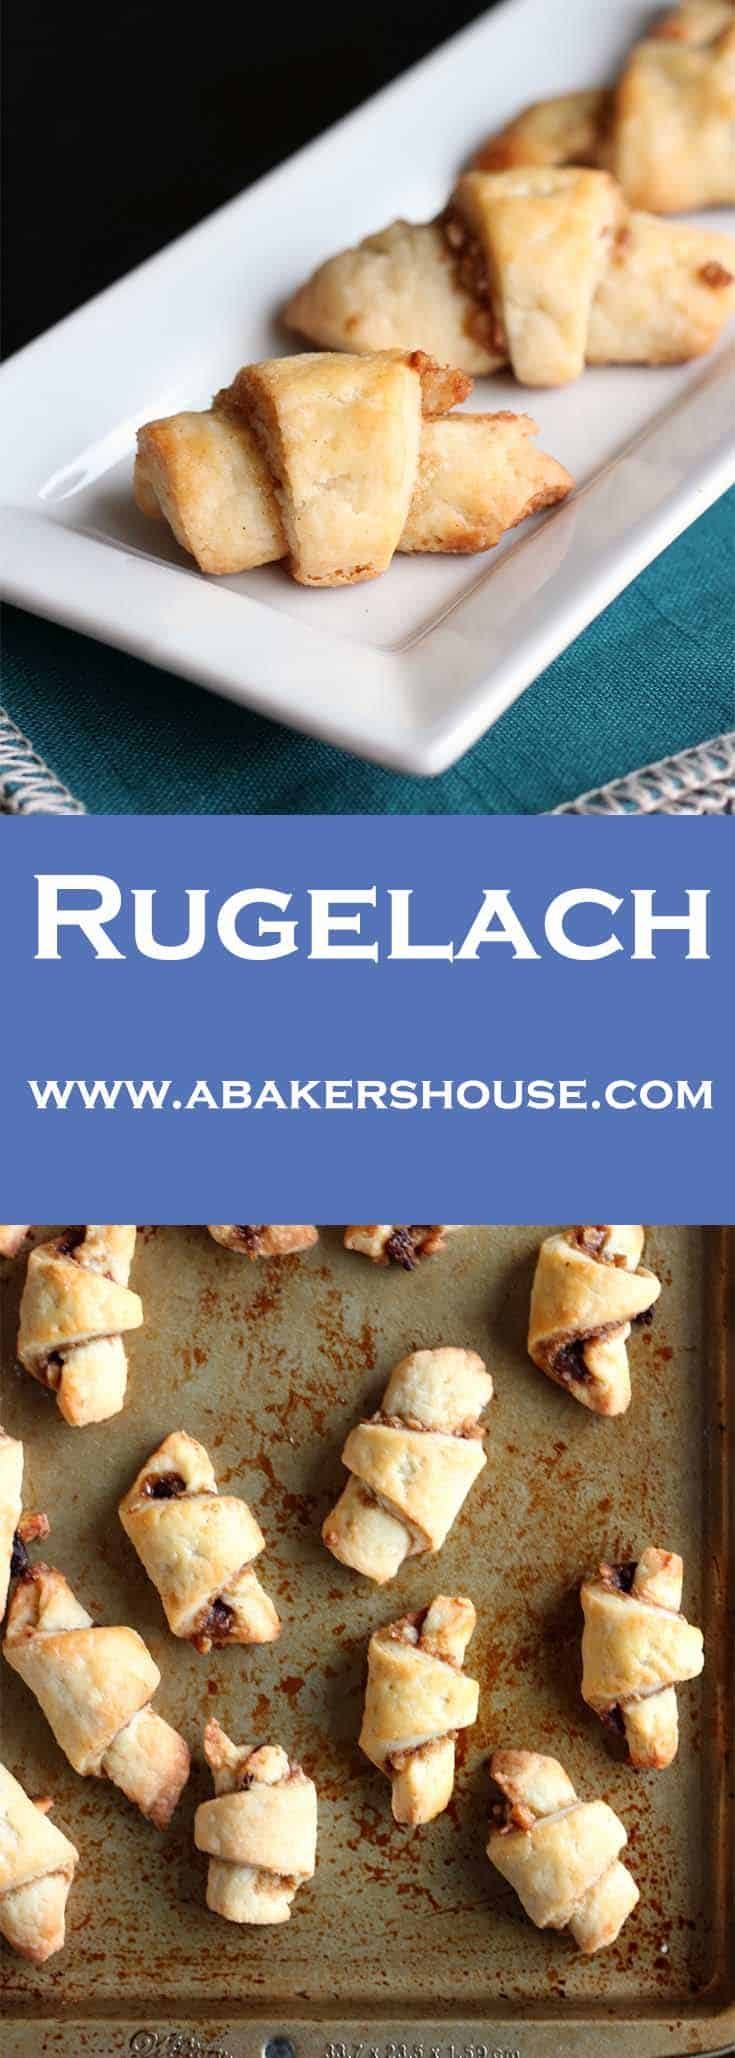 Rugelach are made by cutting the dough in triangles, adding a filling then rolling them up before baking. This recipe has a filling of cinnamon and raisins. #abakershouse #rugelach